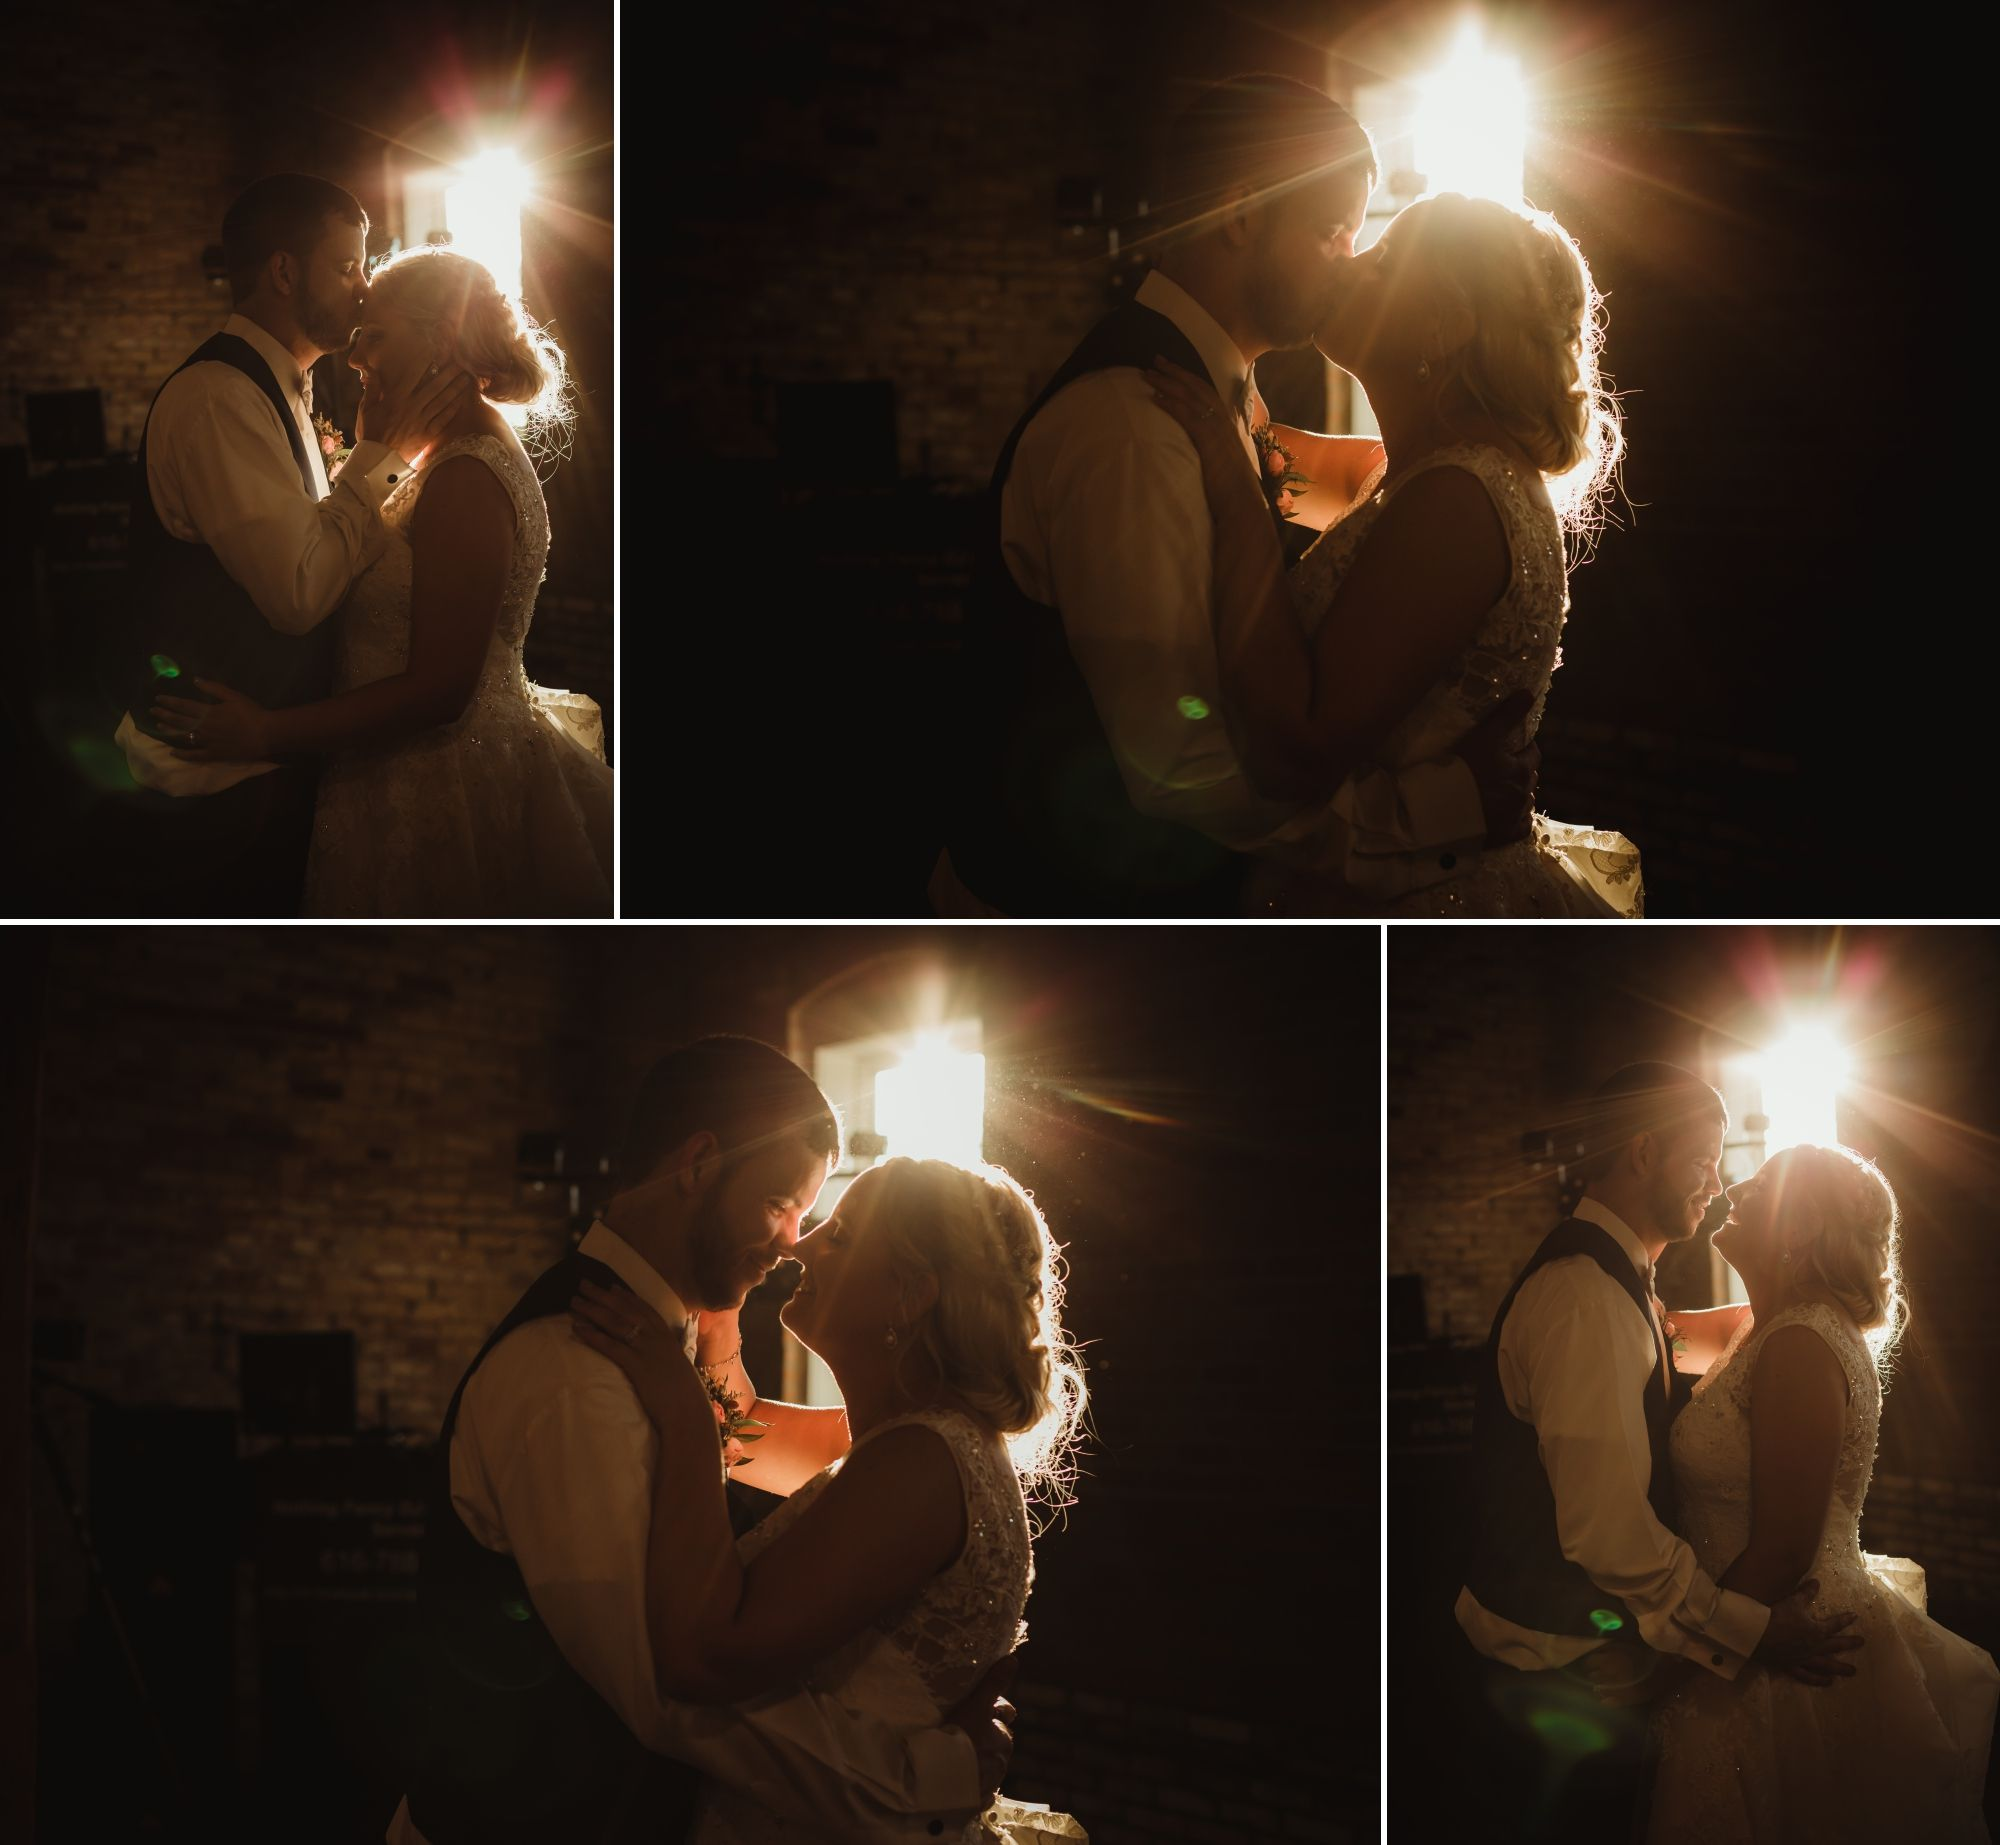 Bride and groom smiling and kissing on the dance floor with golden sunset light shining through a window.